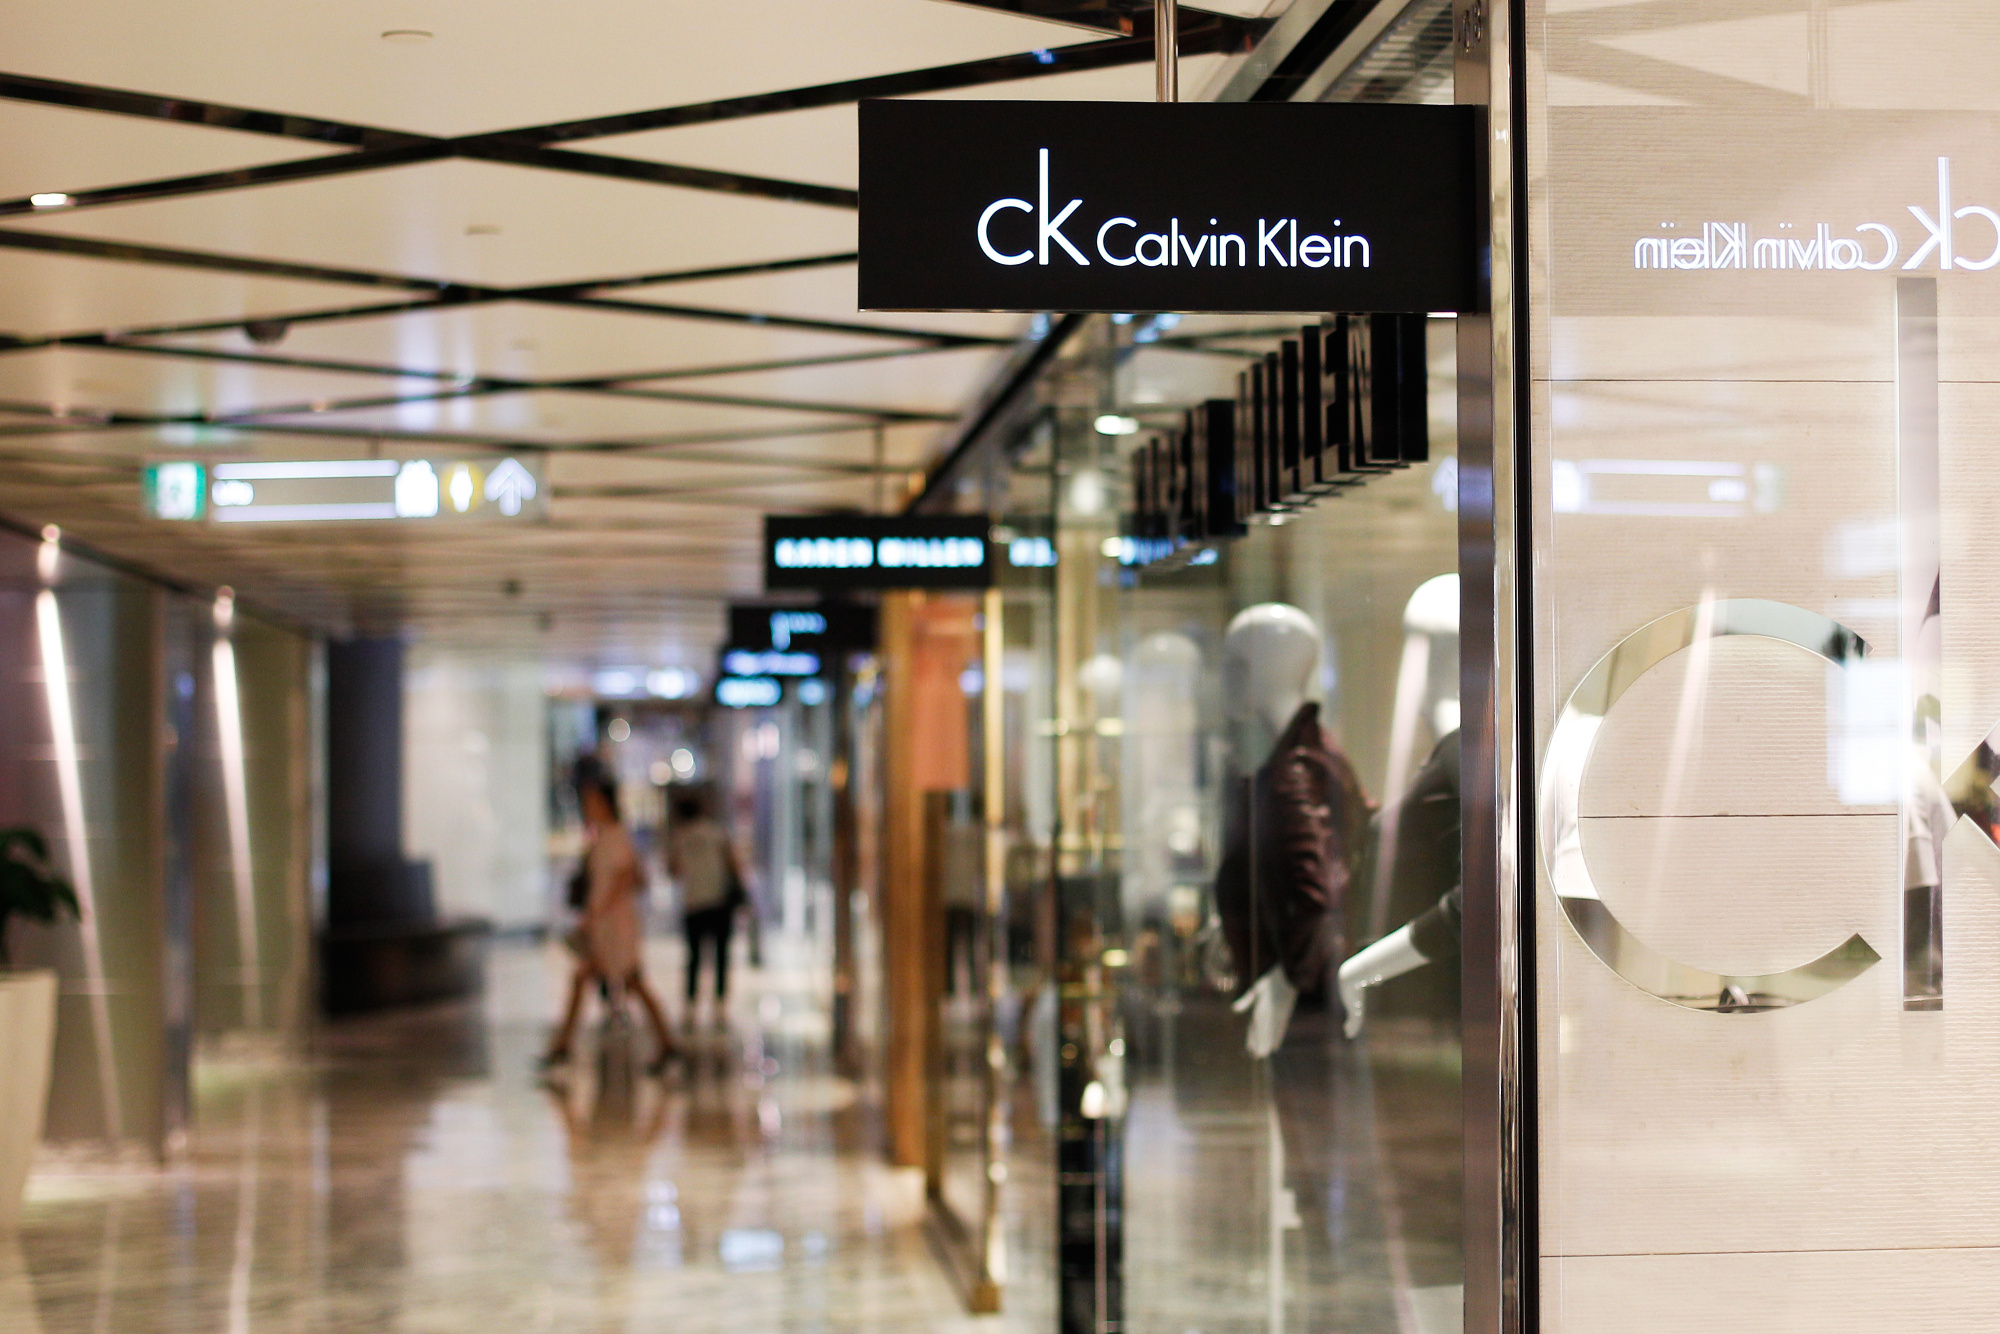 Signage for Calvin Klein Inc. is displayed at a store inside the Westfield Sydney shopping center, operated by Scentre Group, in Sydney, Australia, on Friday, Feb. 19, 2016.